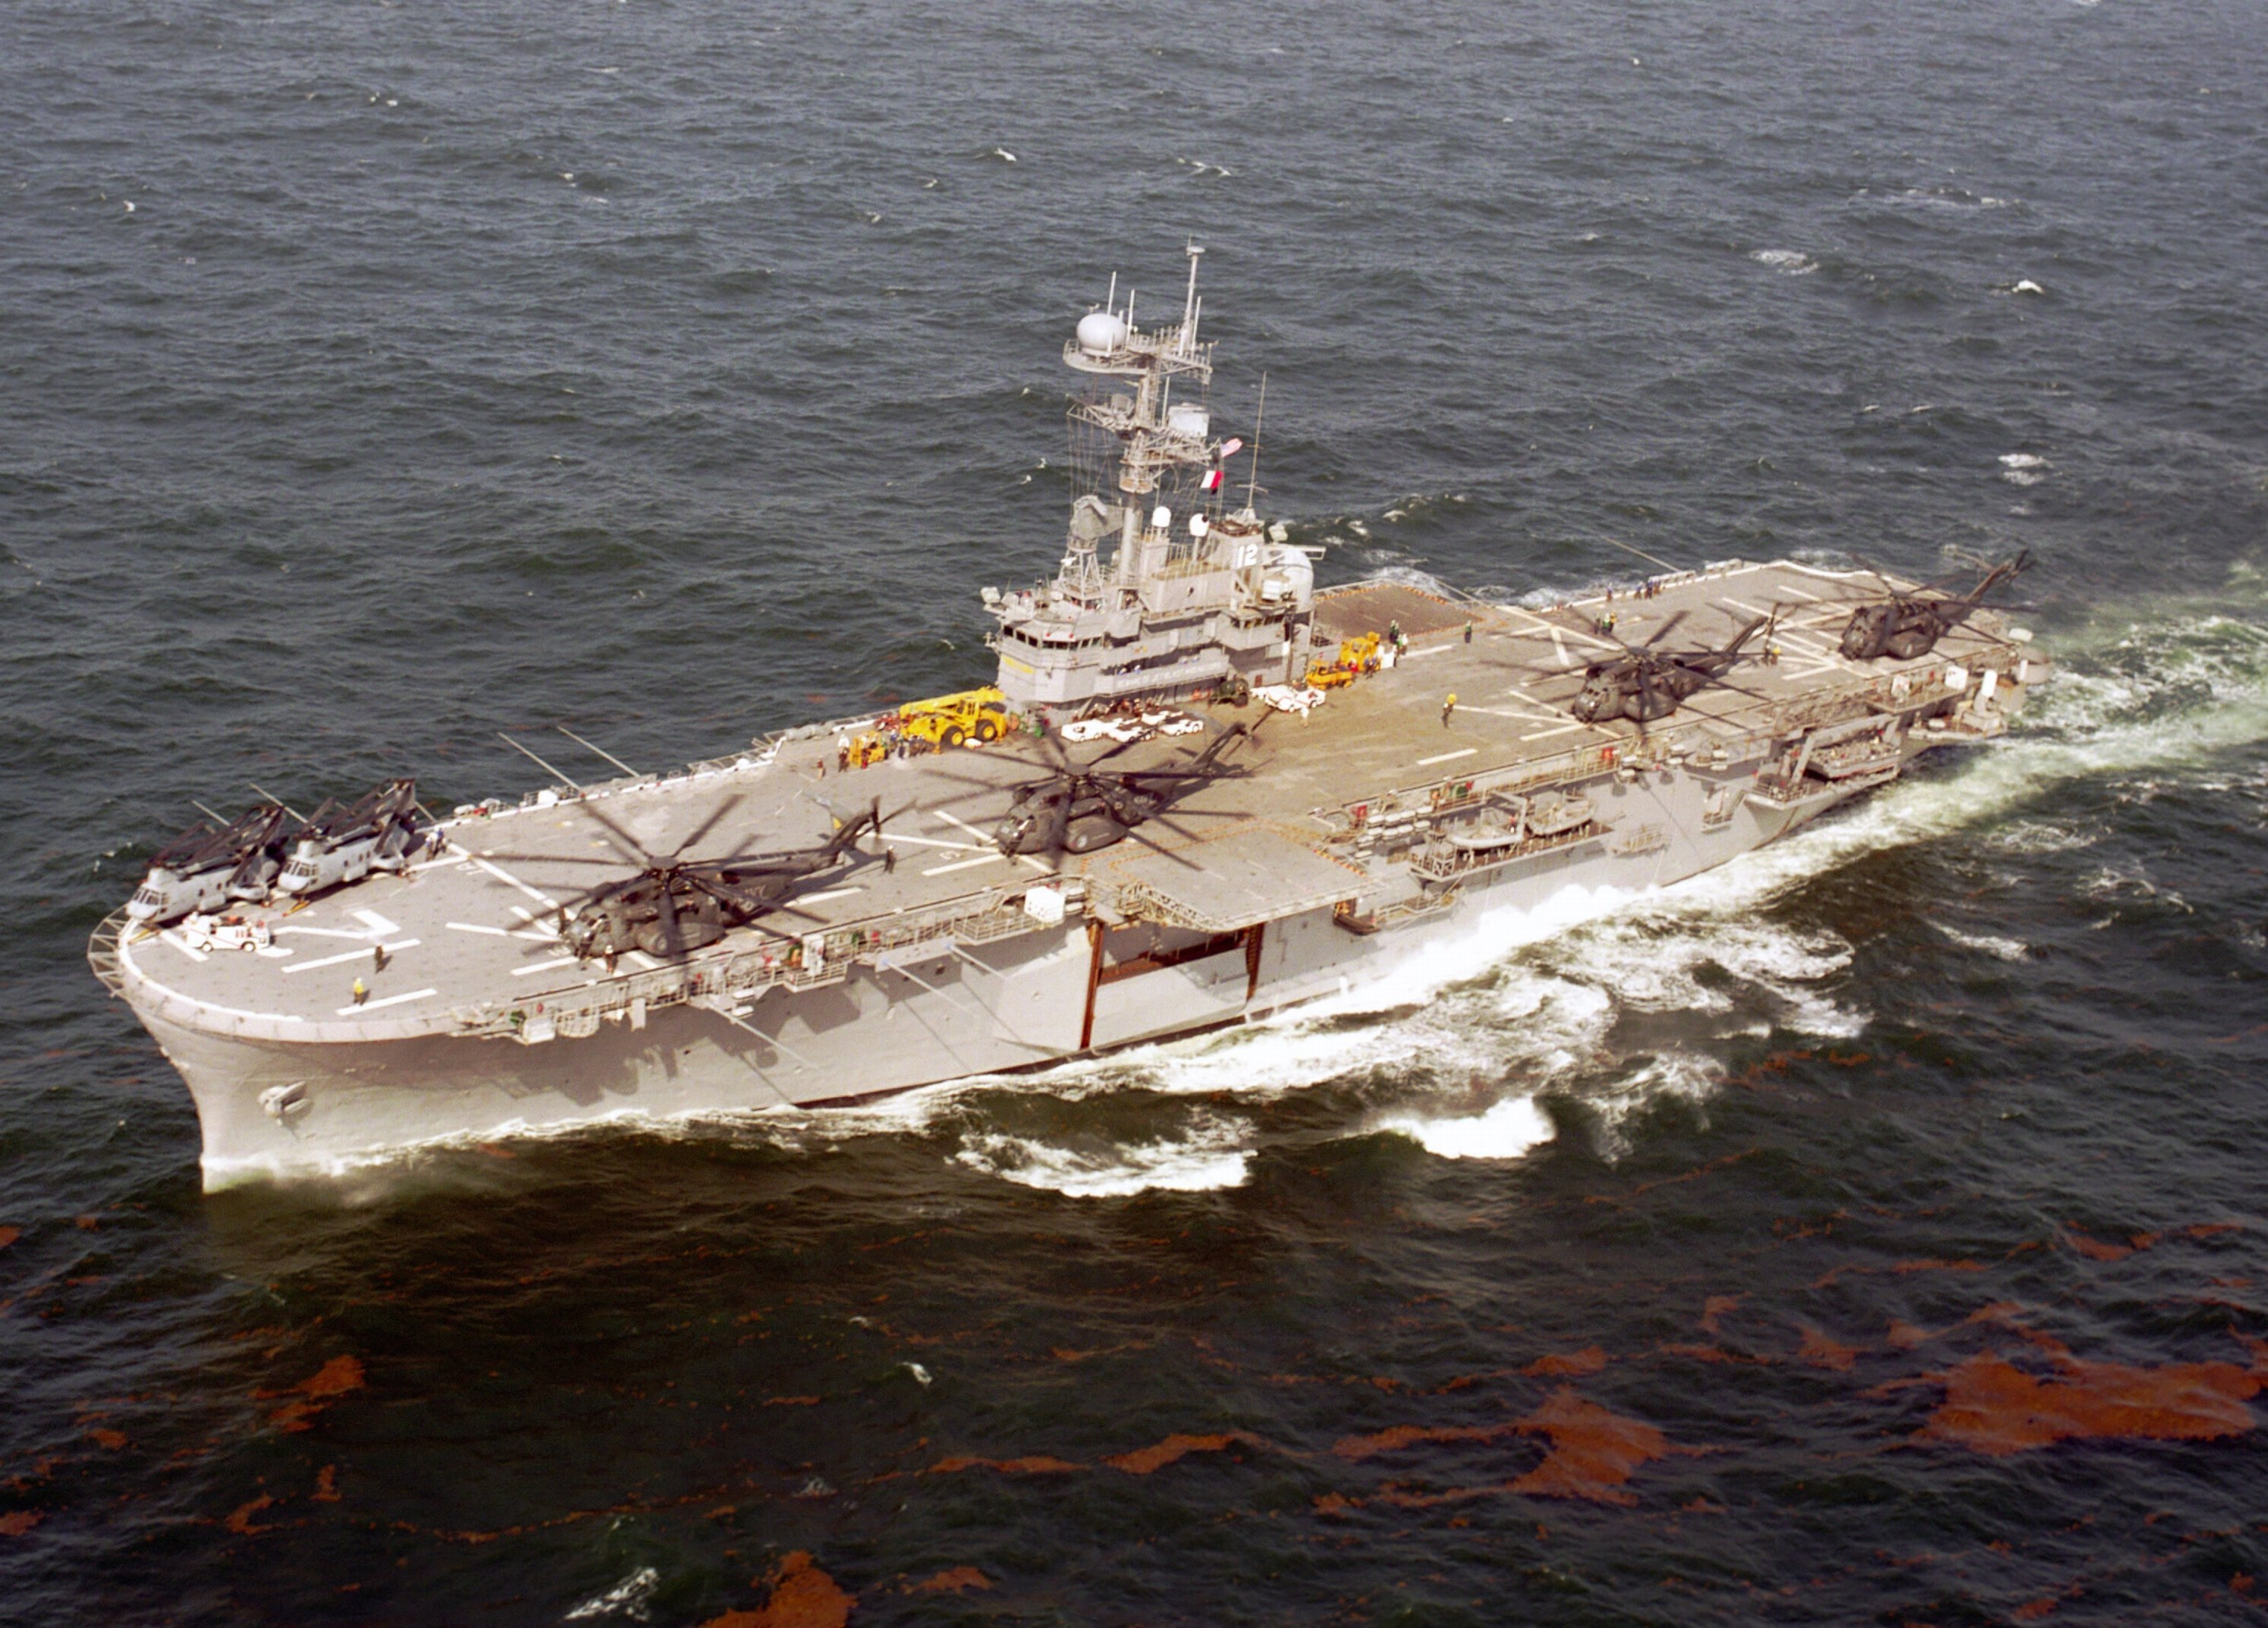 USS Inchon, an amphibious assault ship of the Iwo Jima class.